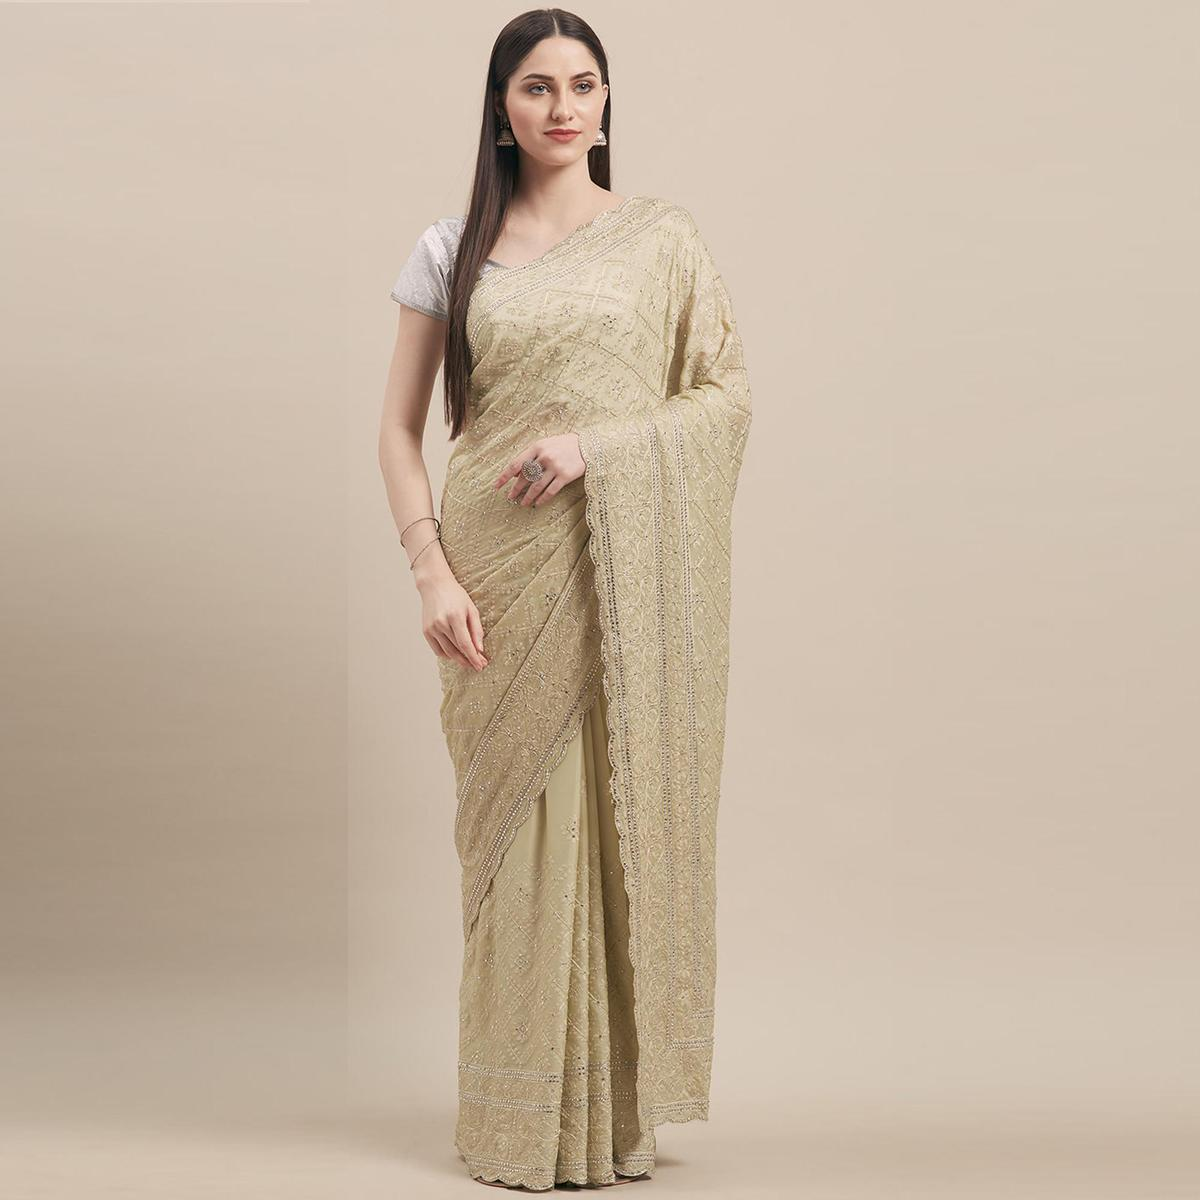 MAHOTSAV Green Pure Georgette Saree With Matching Blouse